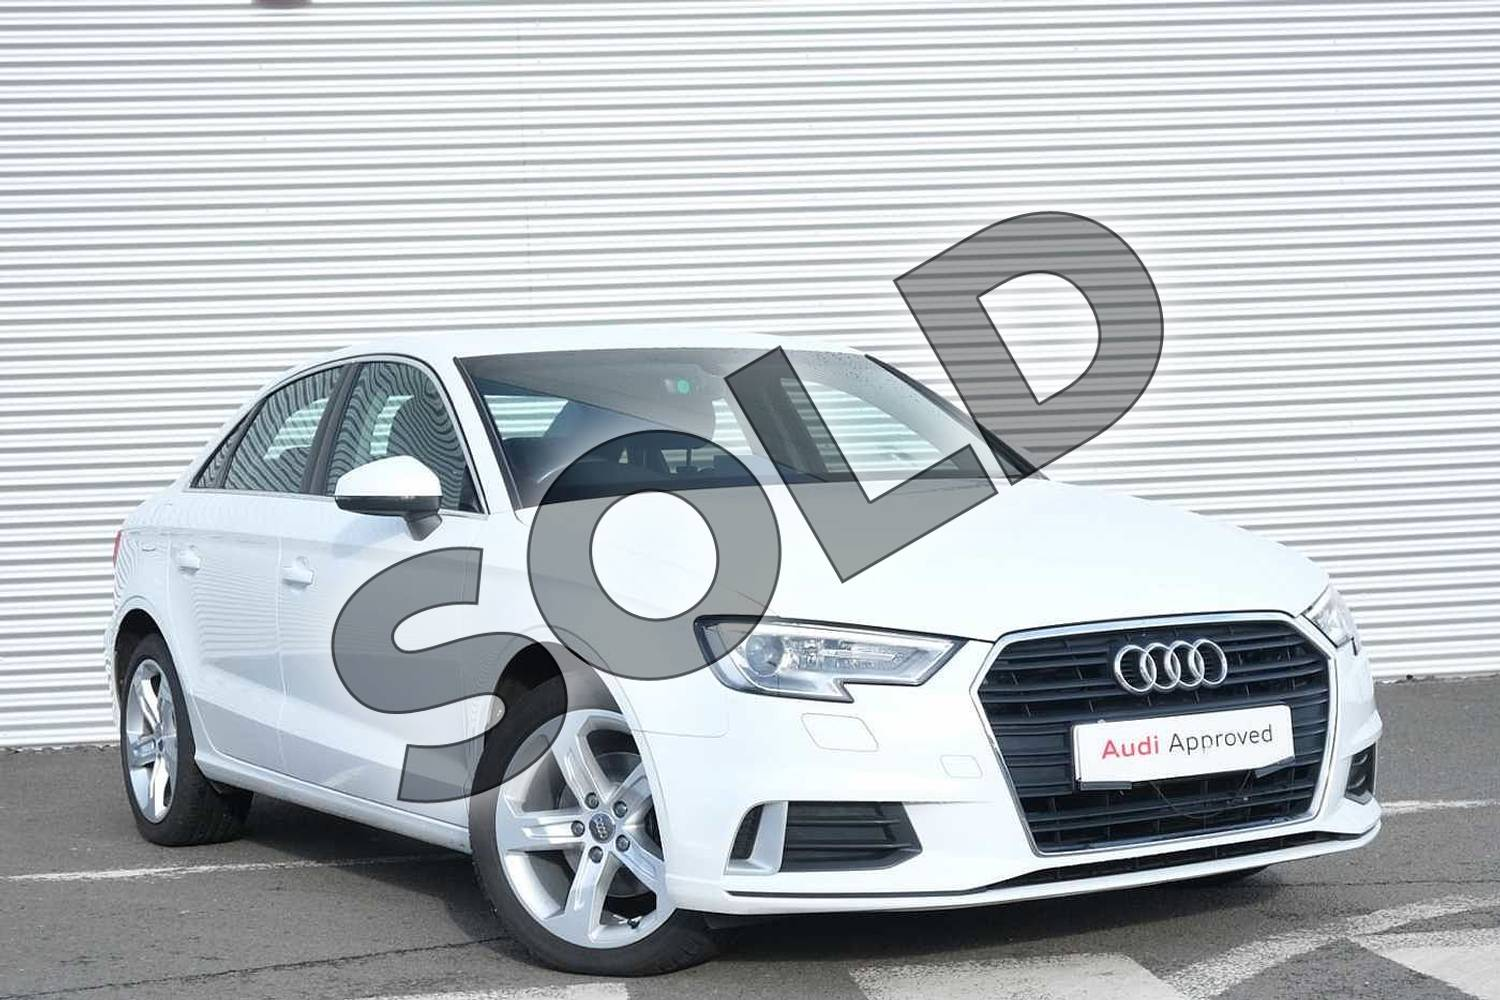 2017 Audi A3 Diesel Saloon 2.0 TDI Sport 4dr in Glacier White Metallic at Coventry Audi